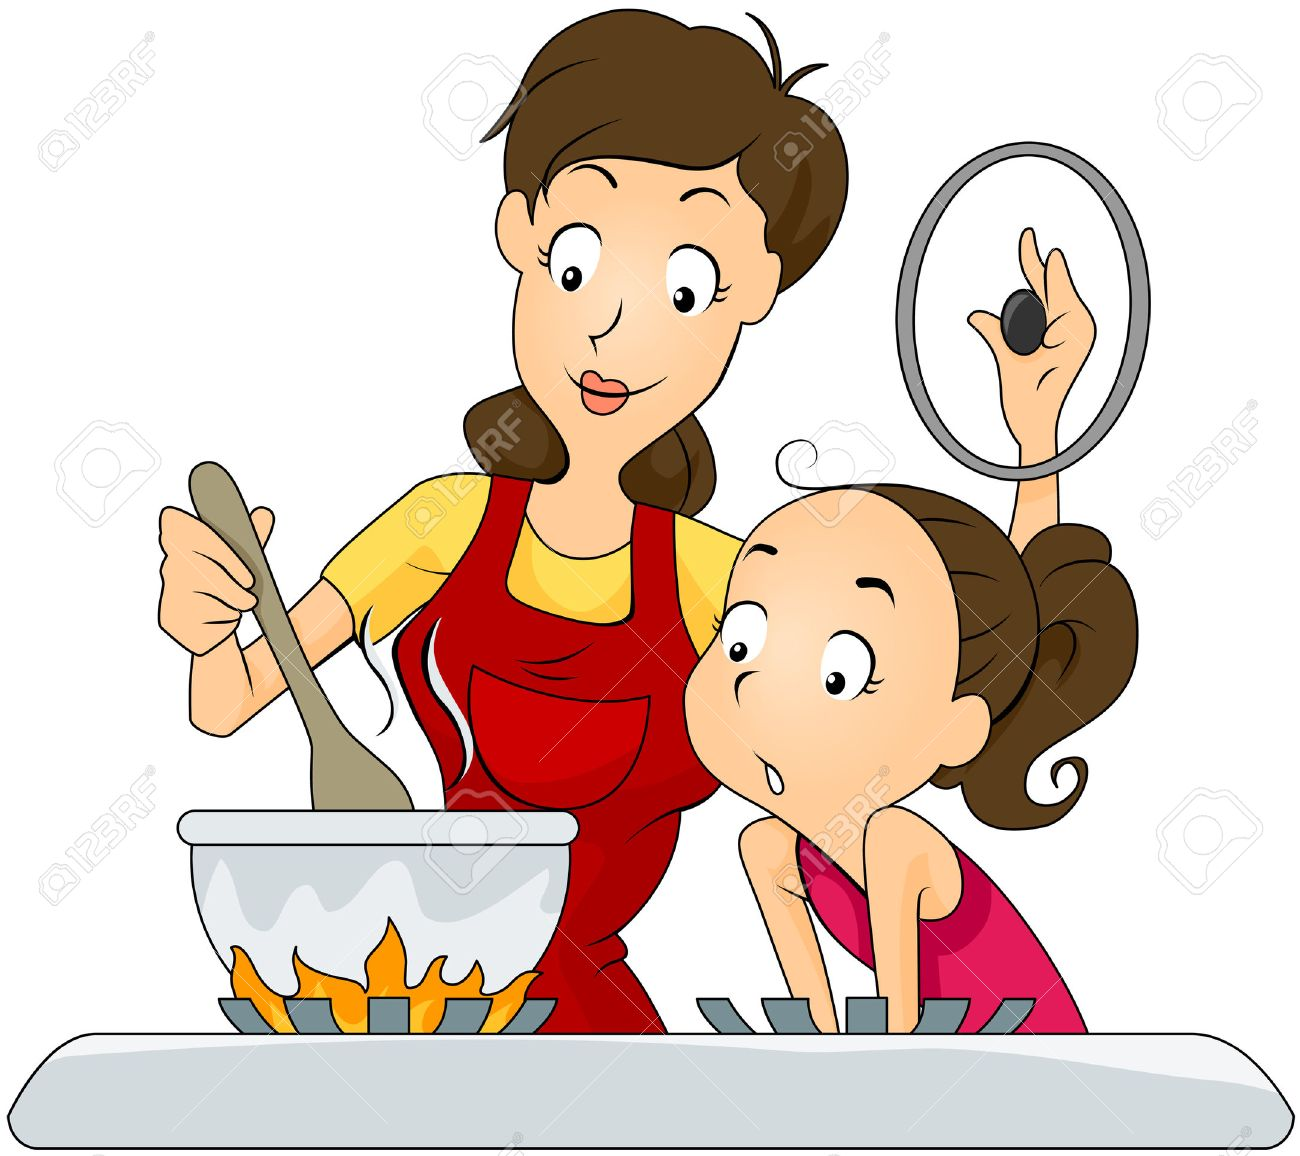 Selection of cartoons on cooking kitchens food and eating - Cooking Cartoon Mother And Daughter At The Kitchen